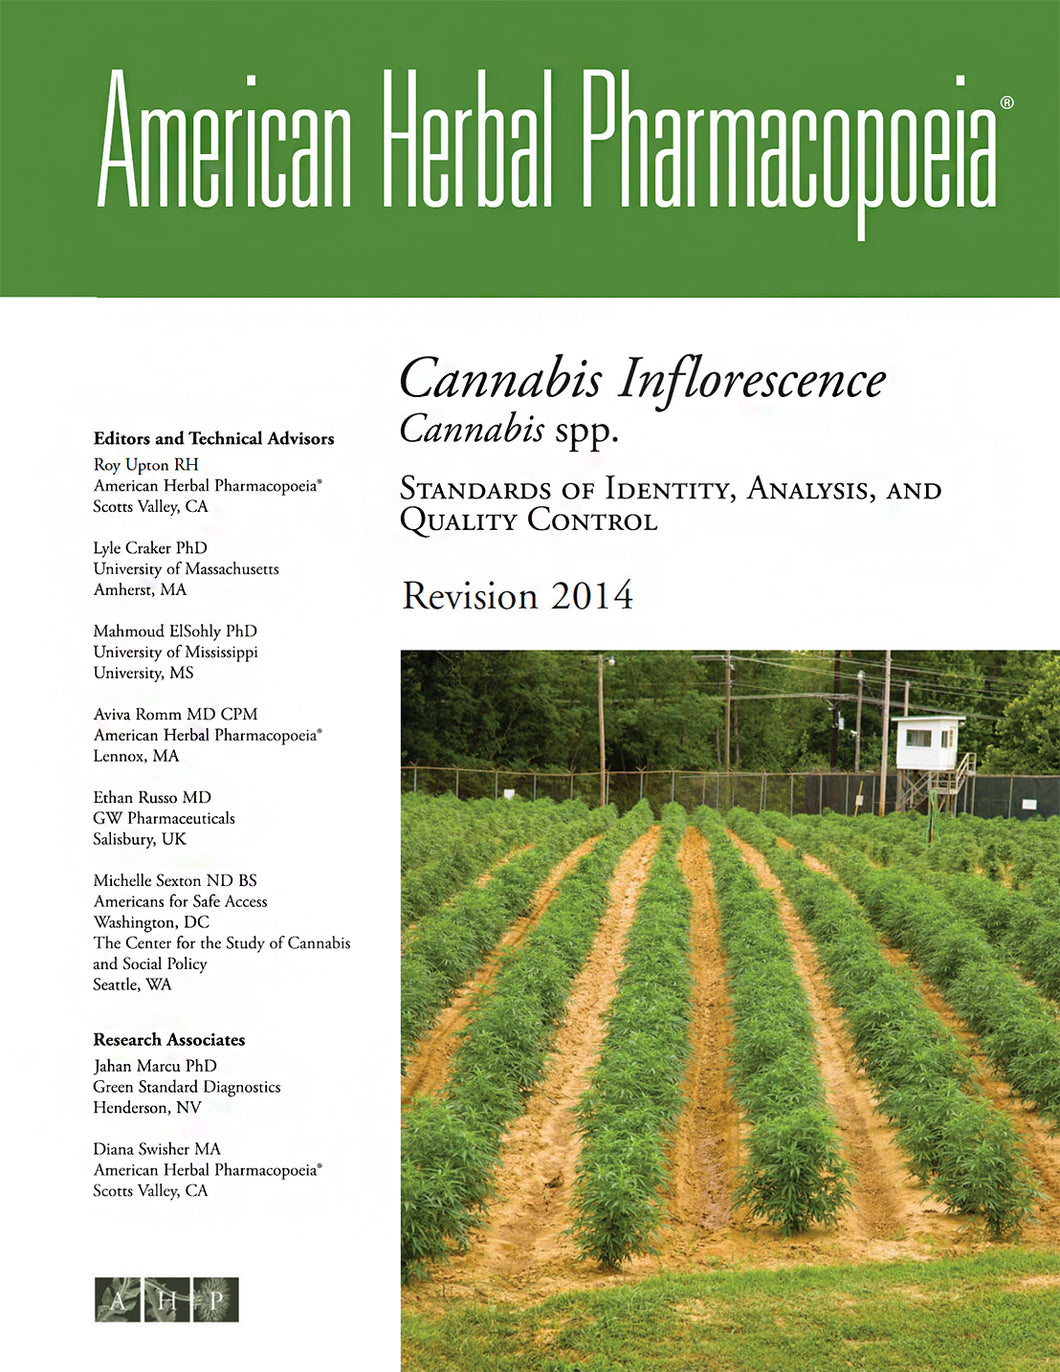 Cannabis Inflorescence Quality Control Monograph